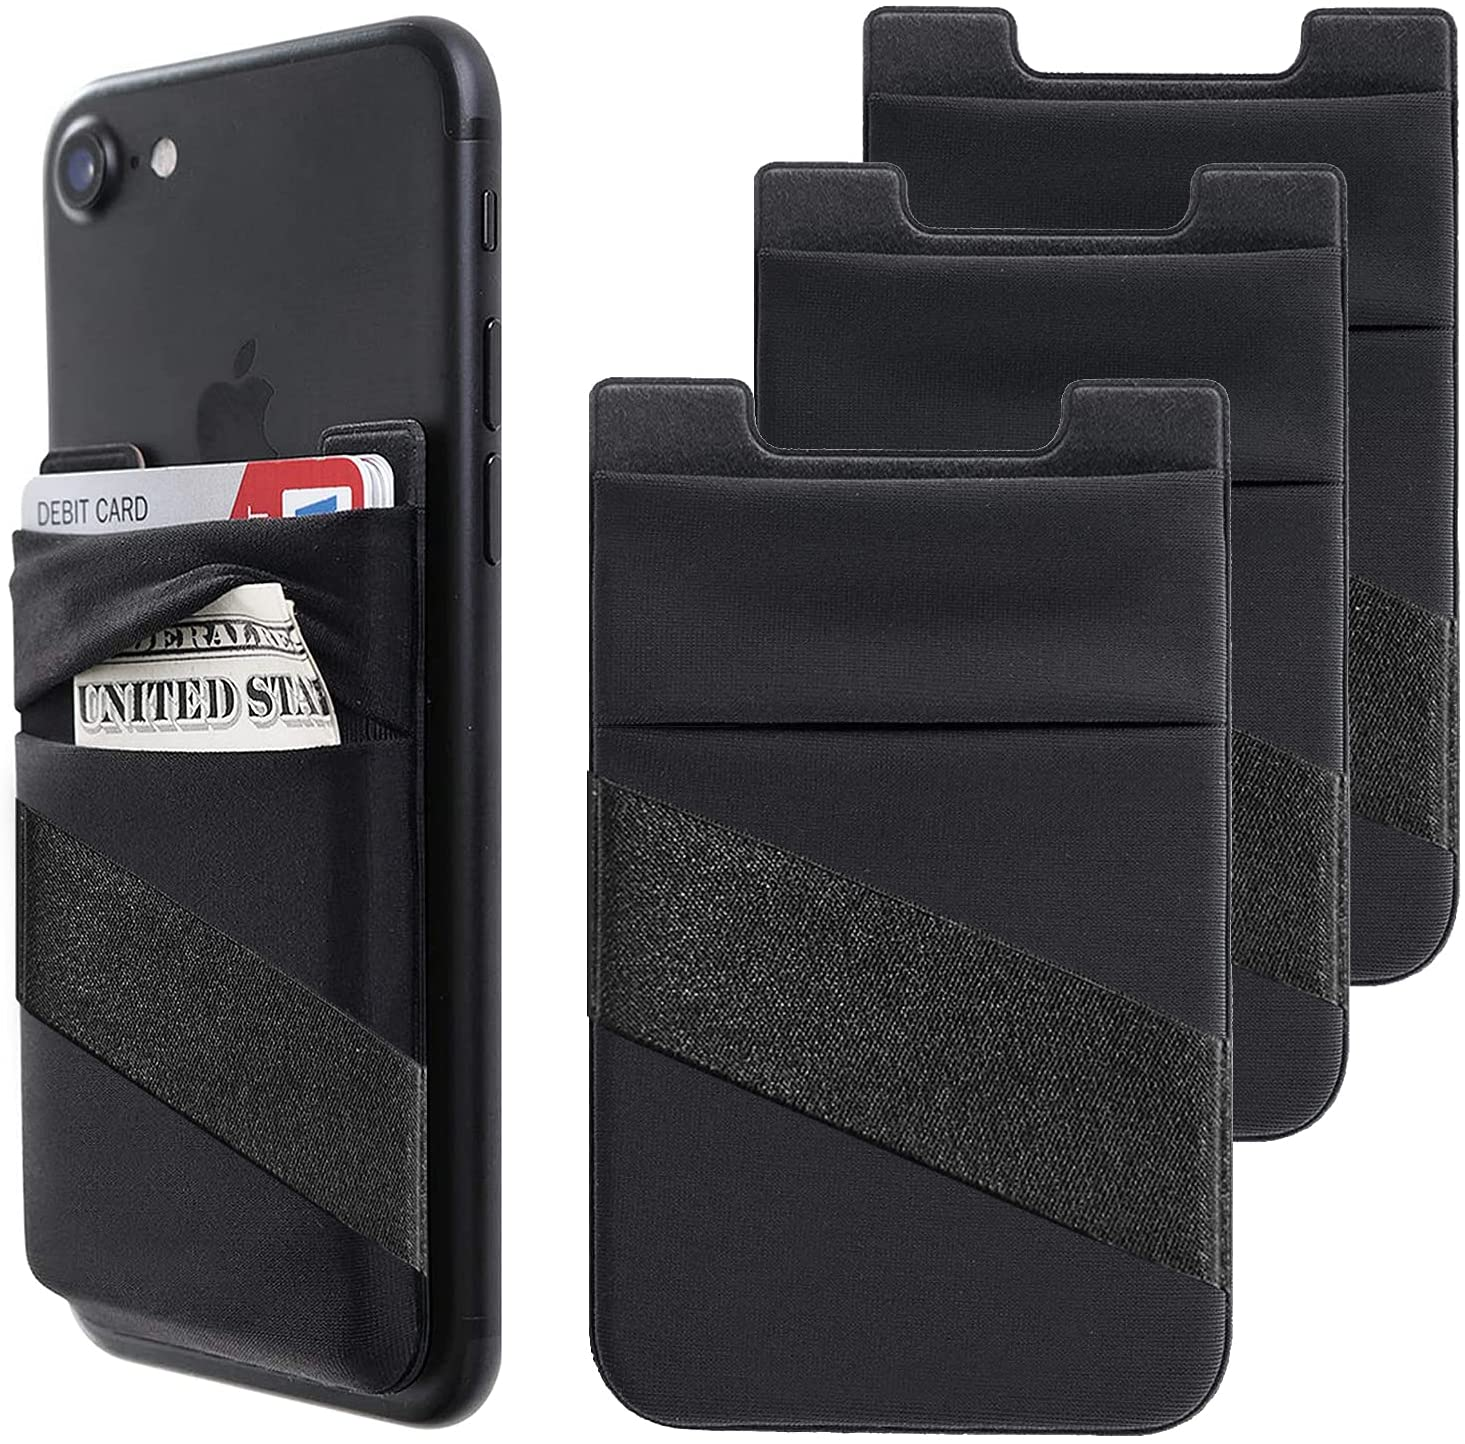 Phone Card Holder, Phone Wallet Stick On with Finger Strap Stretchy Card Holder for Back of Phone Credit Card Holder for Phone Case Compatible with Most of Cell Phone (iPhone, Samsung) - 3Pack Black